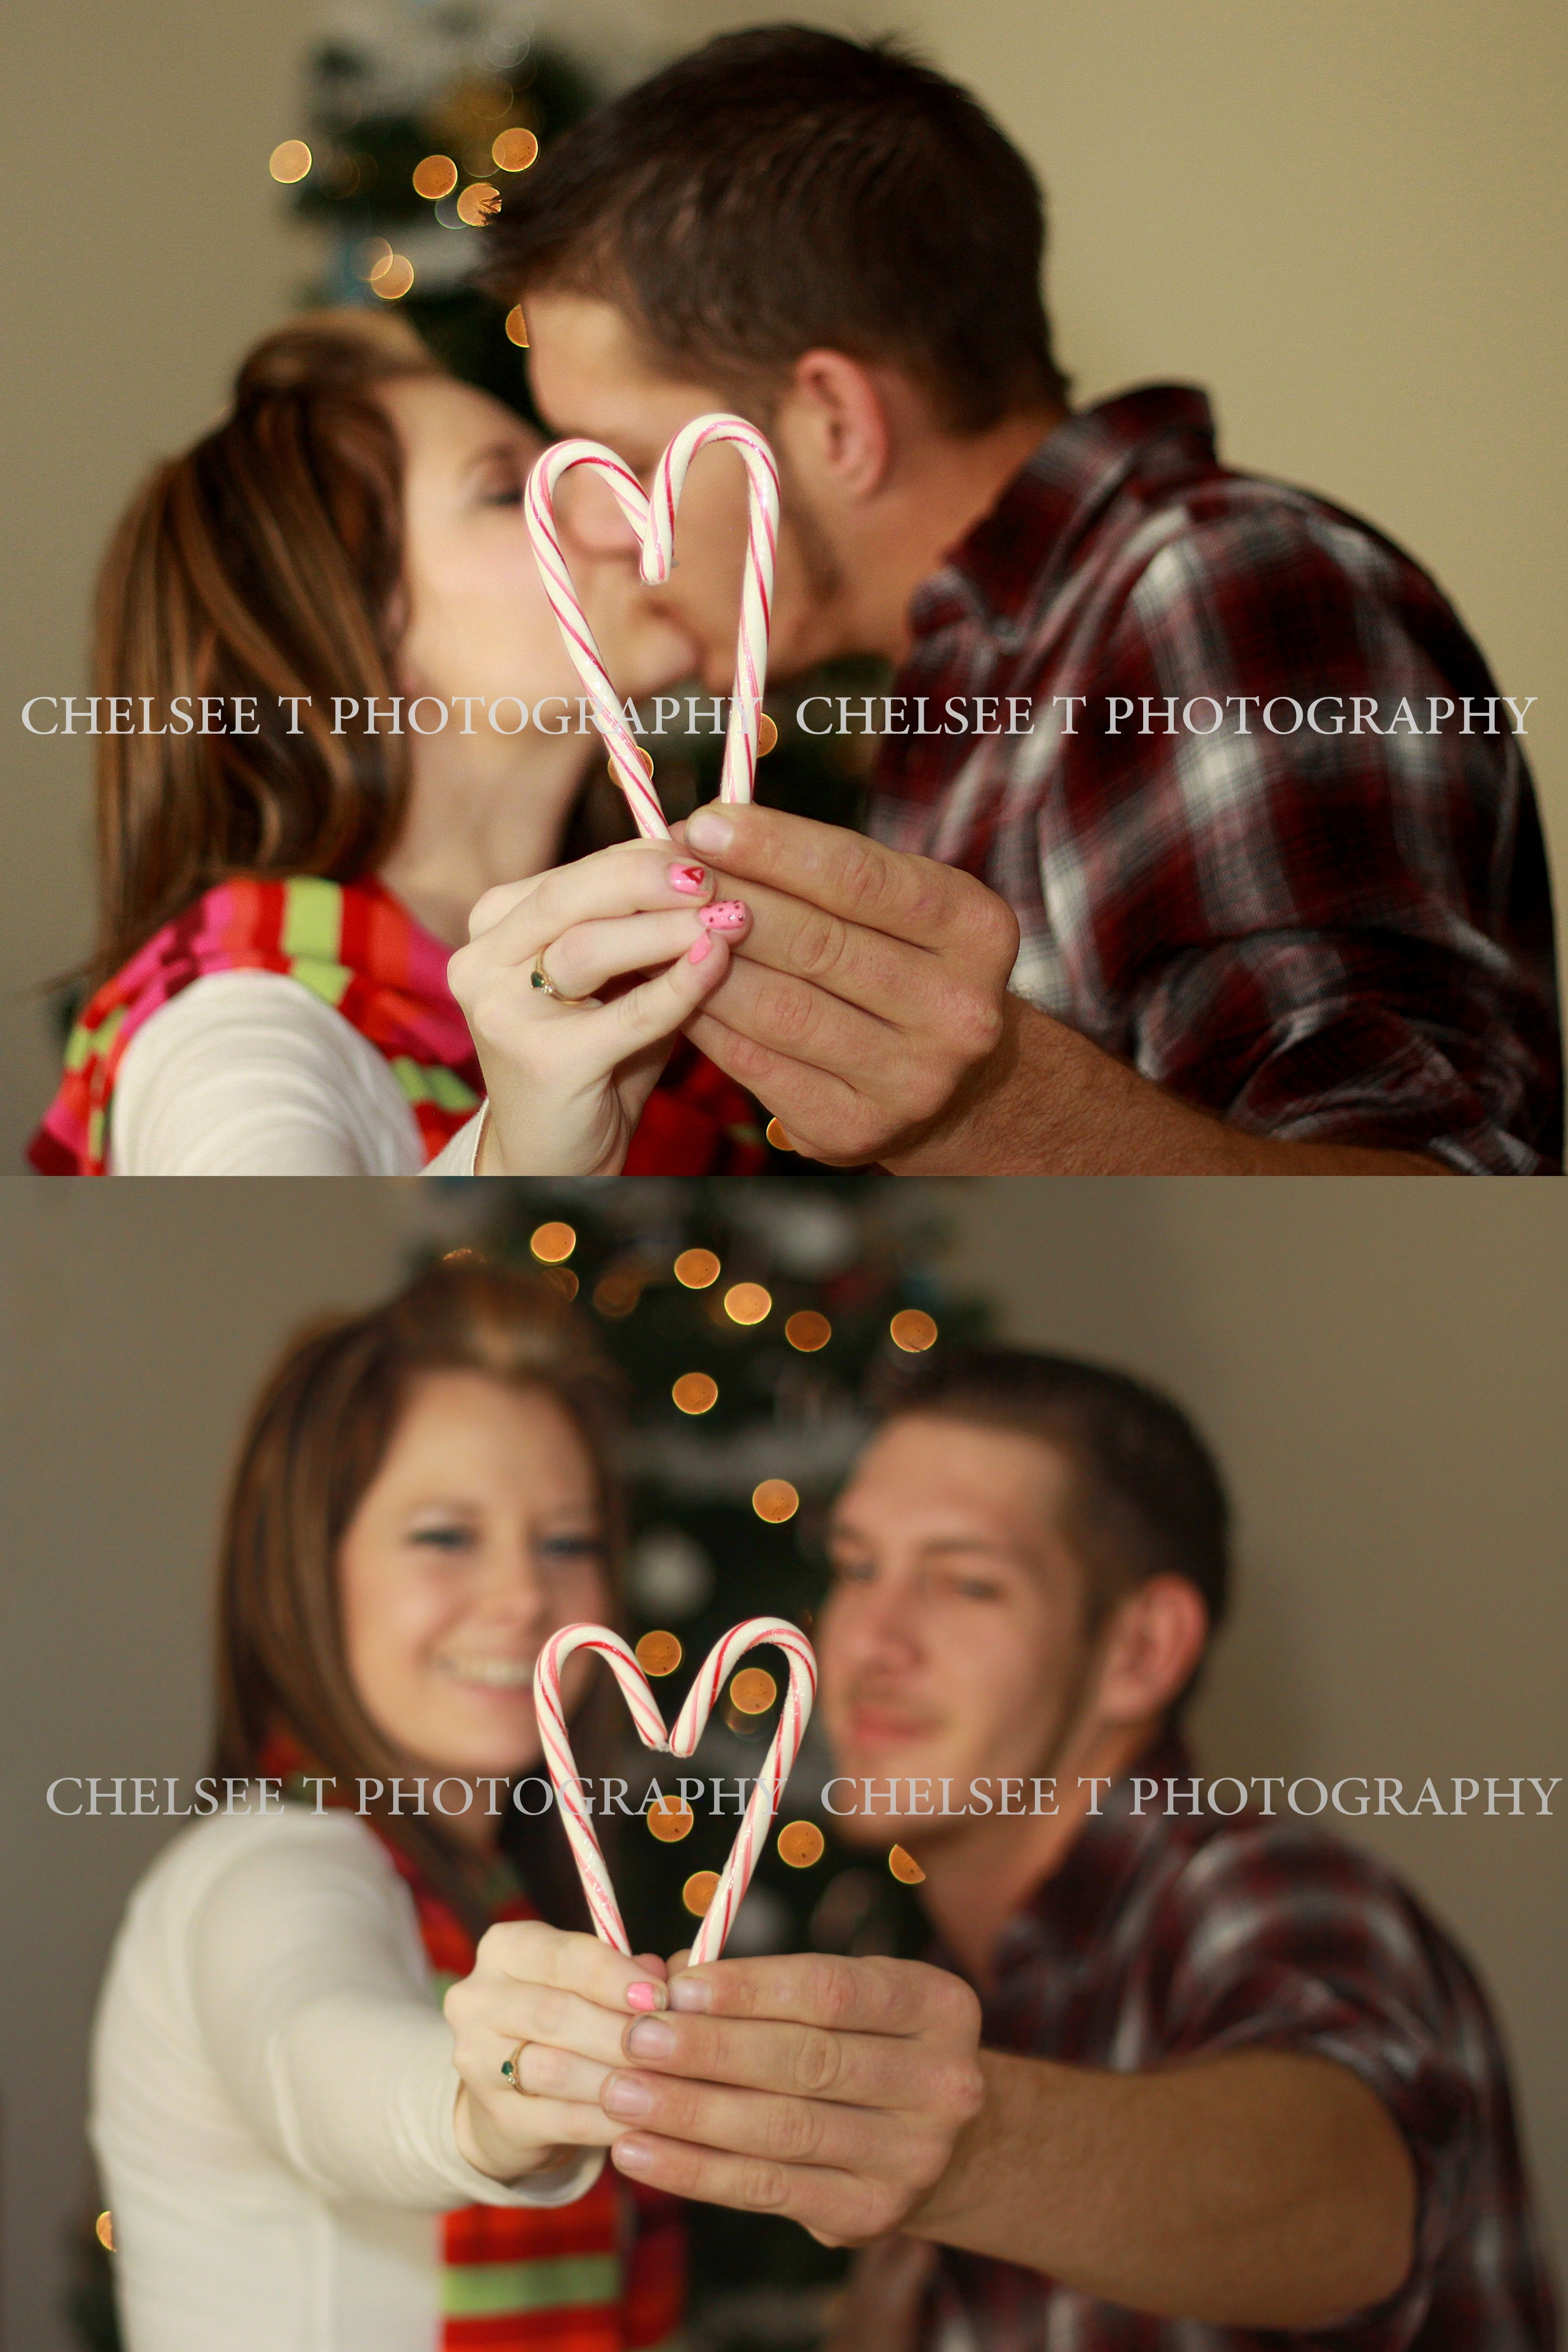 couple christmas photography pose ideas   have each person hold one candy cane to form in the shape of a heart :)